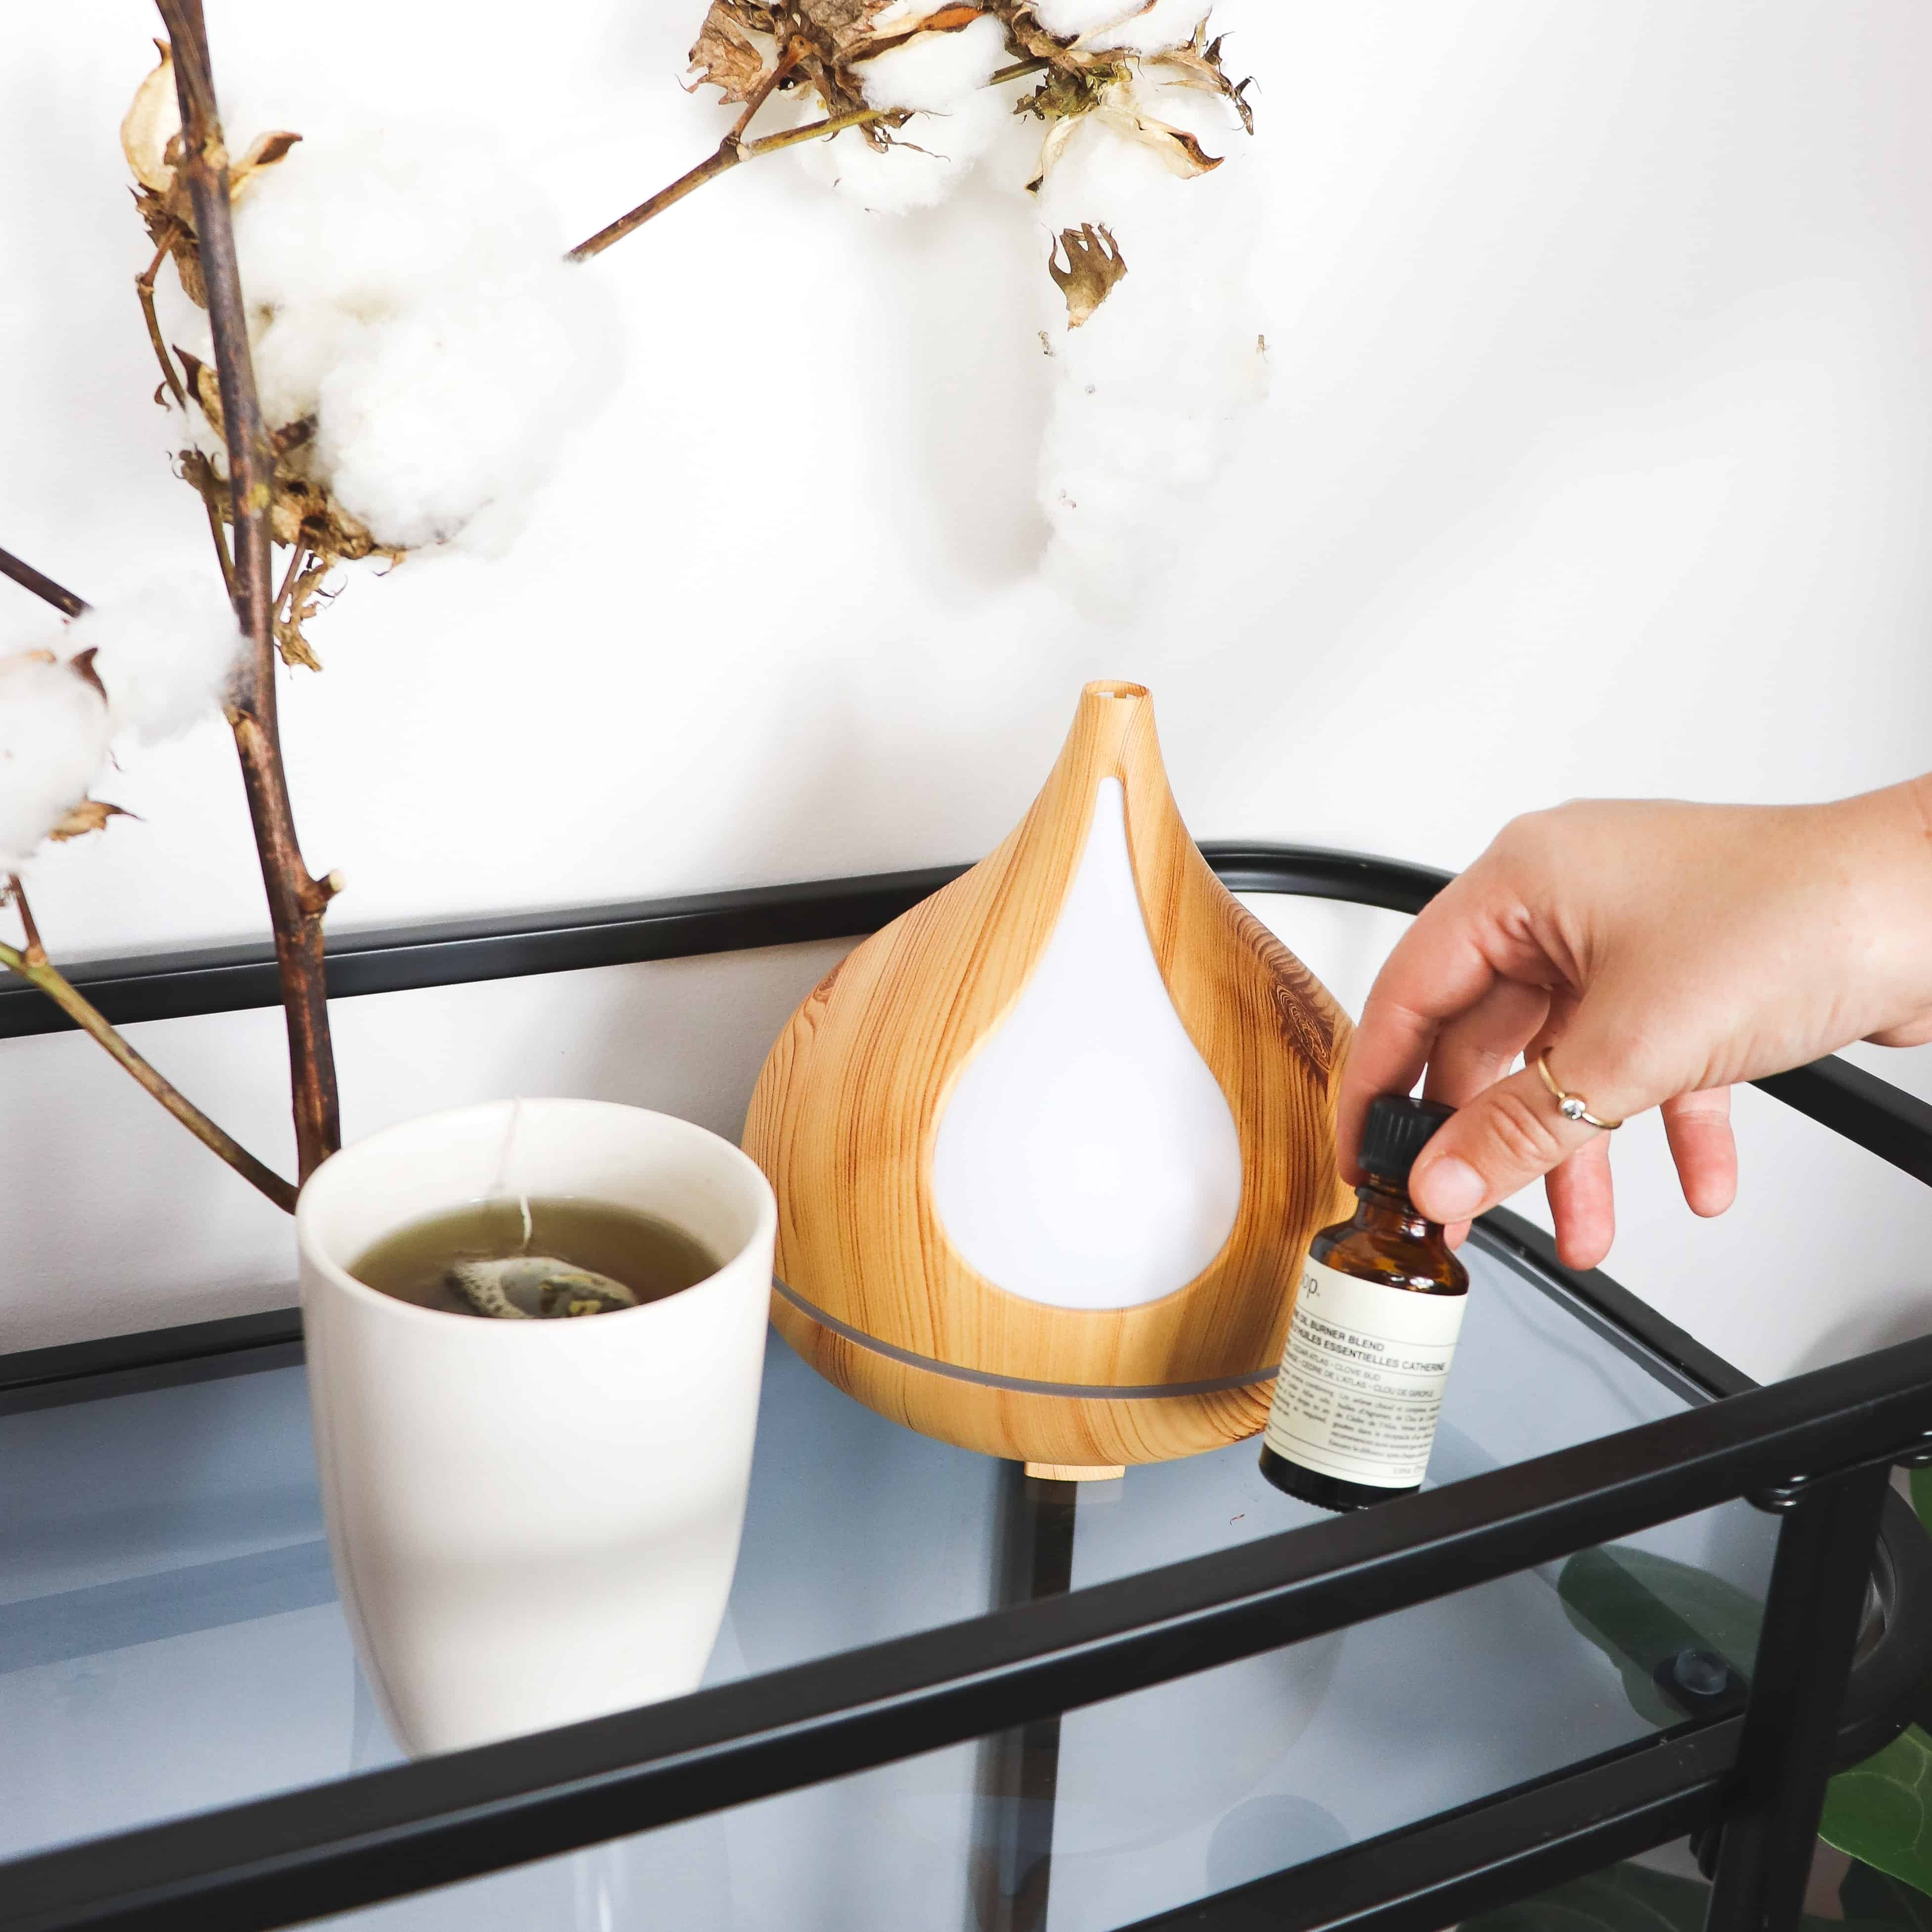 essential oil diffuser on rolling cart